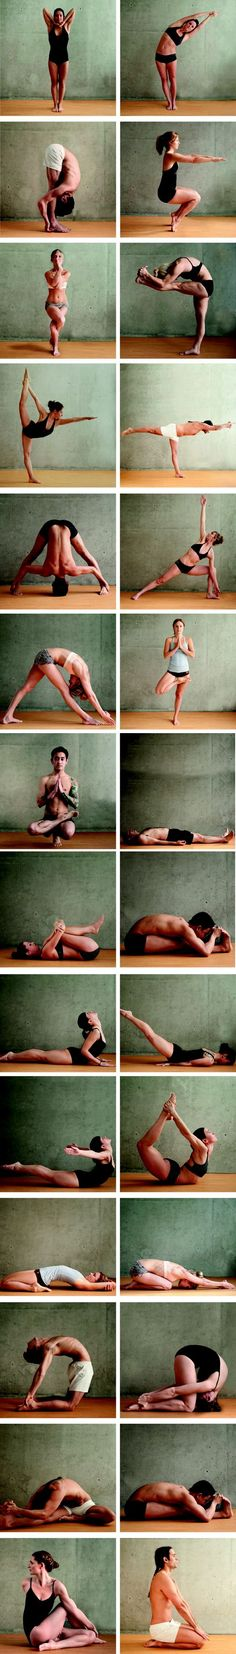 Bikram Yoga Poses #yoga #fitness